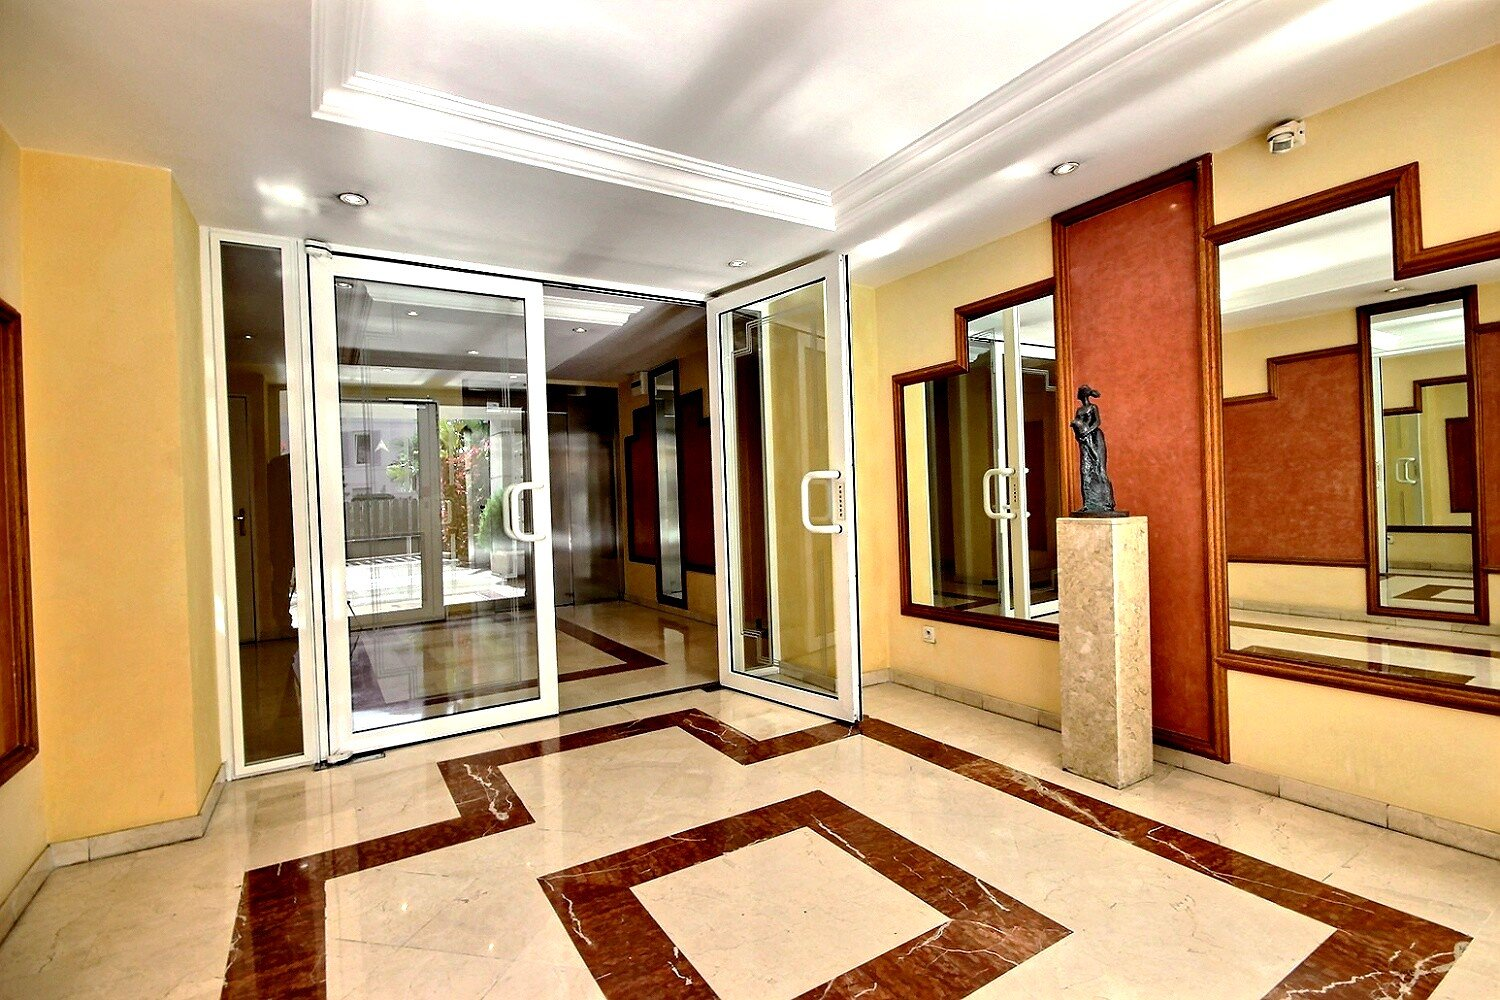 Property for sale in Cannes Montrose 2 Rooms 62 m²